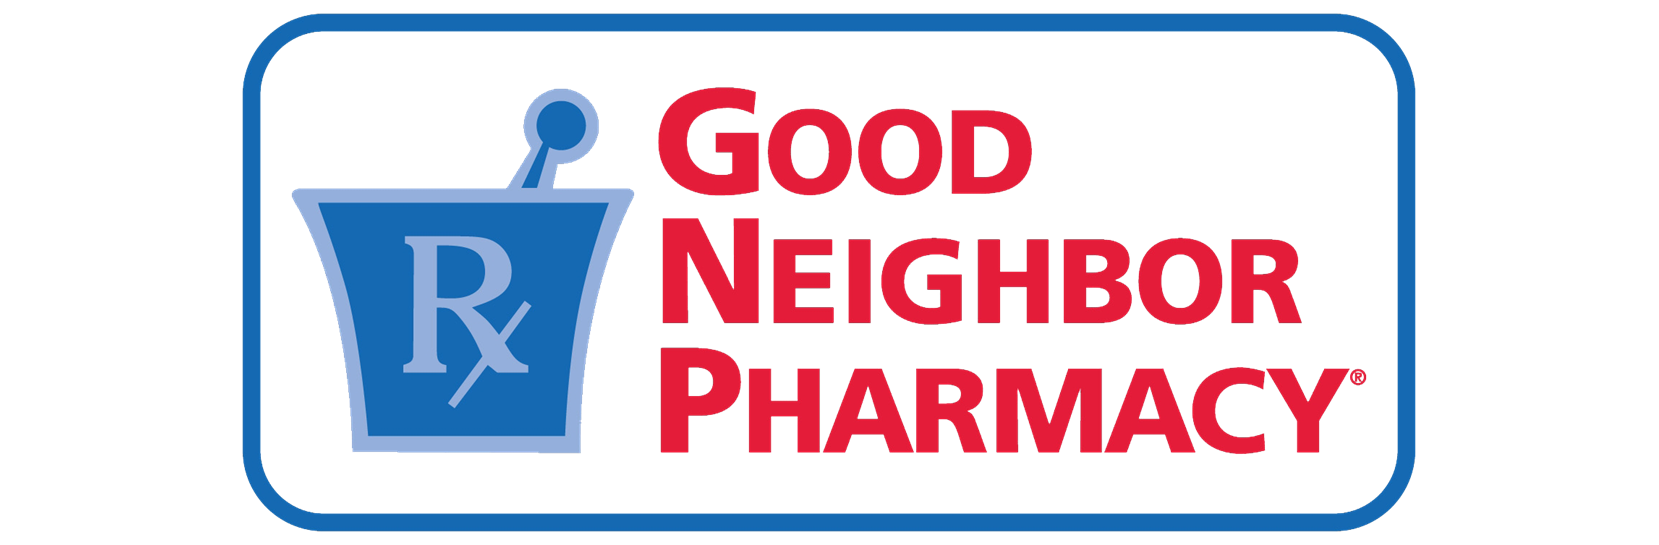 Asti's Pharmacy of South Hills is a Good Neighbor Pharmacy